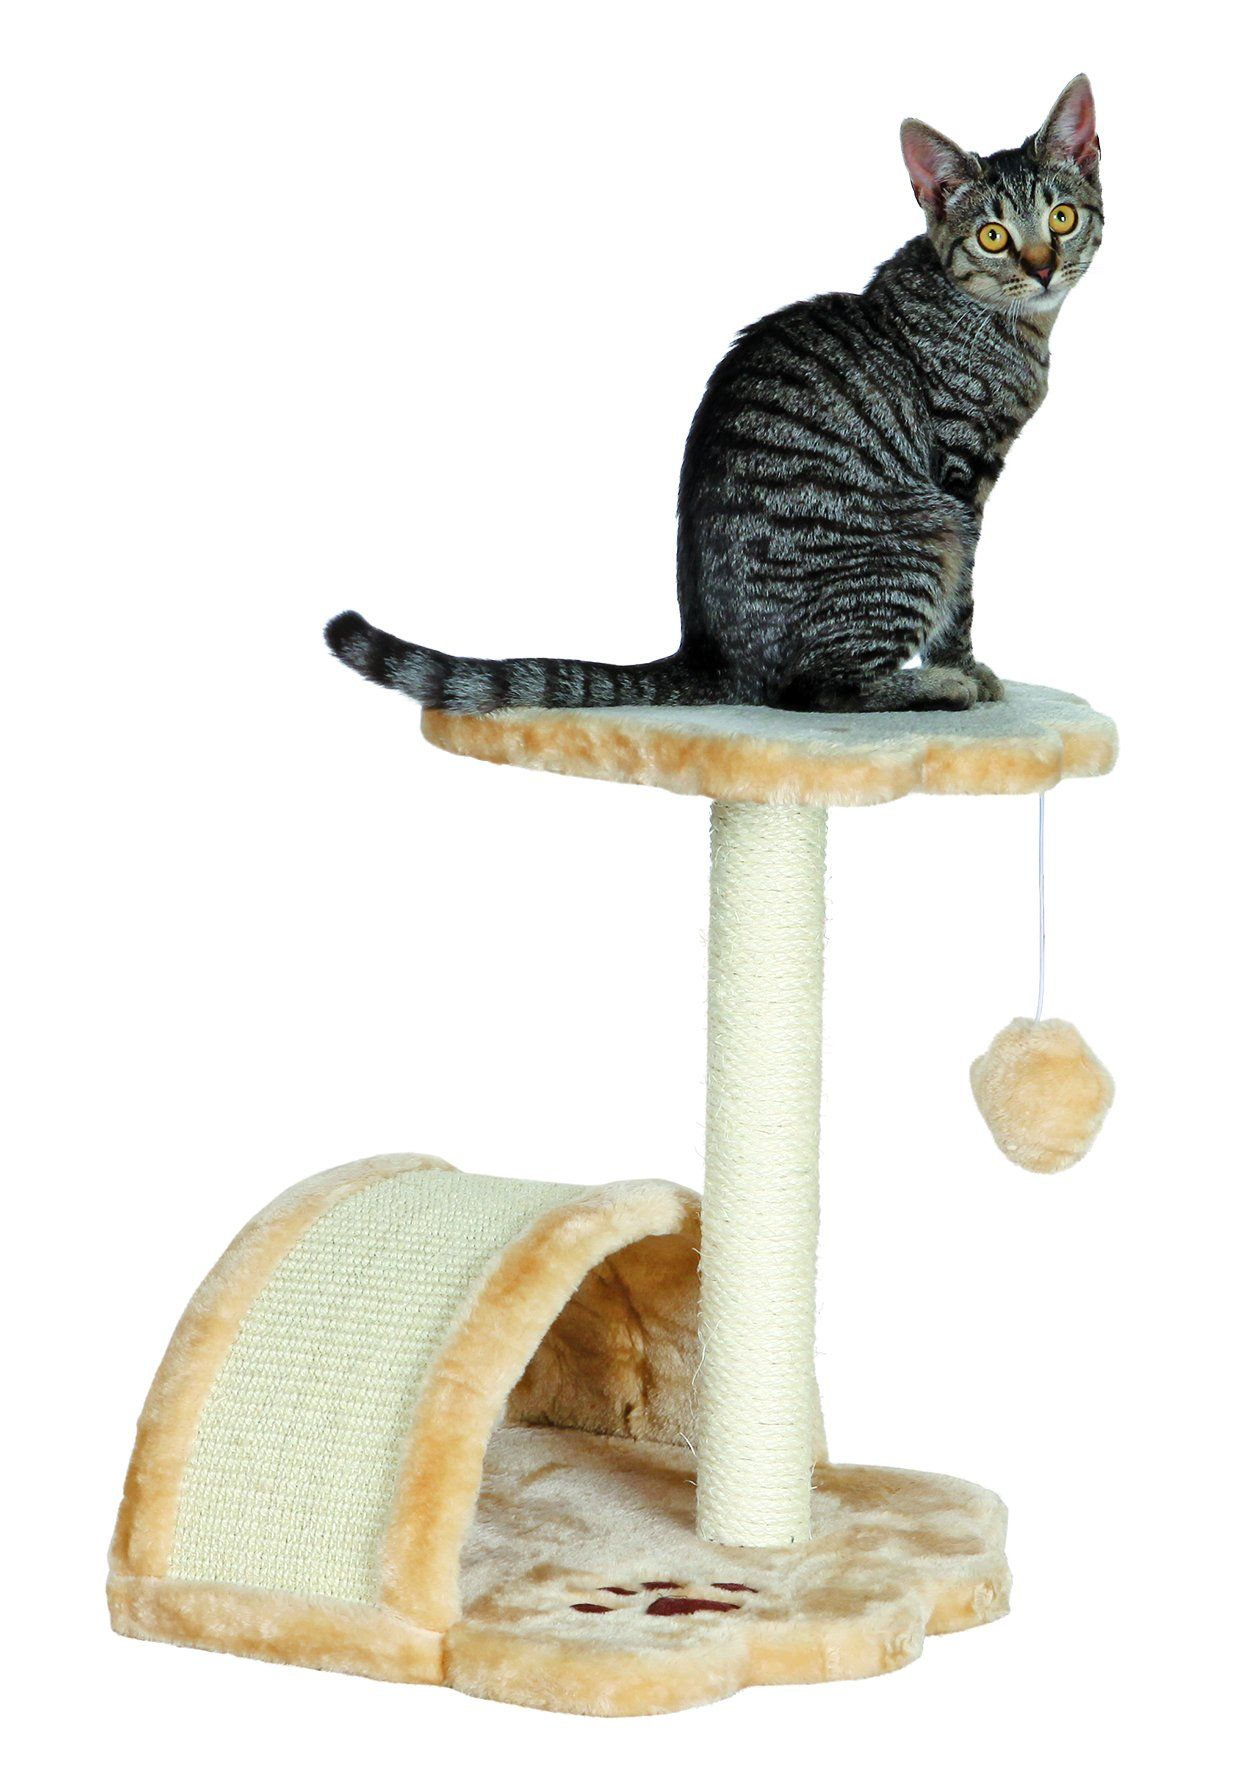 Trixie Pet Products Vitoria Kitten Scratching Post Read More At The Image Link This Is An Affiliate L Best Cat Scratching Post Cat Scratching Post Cat Bed